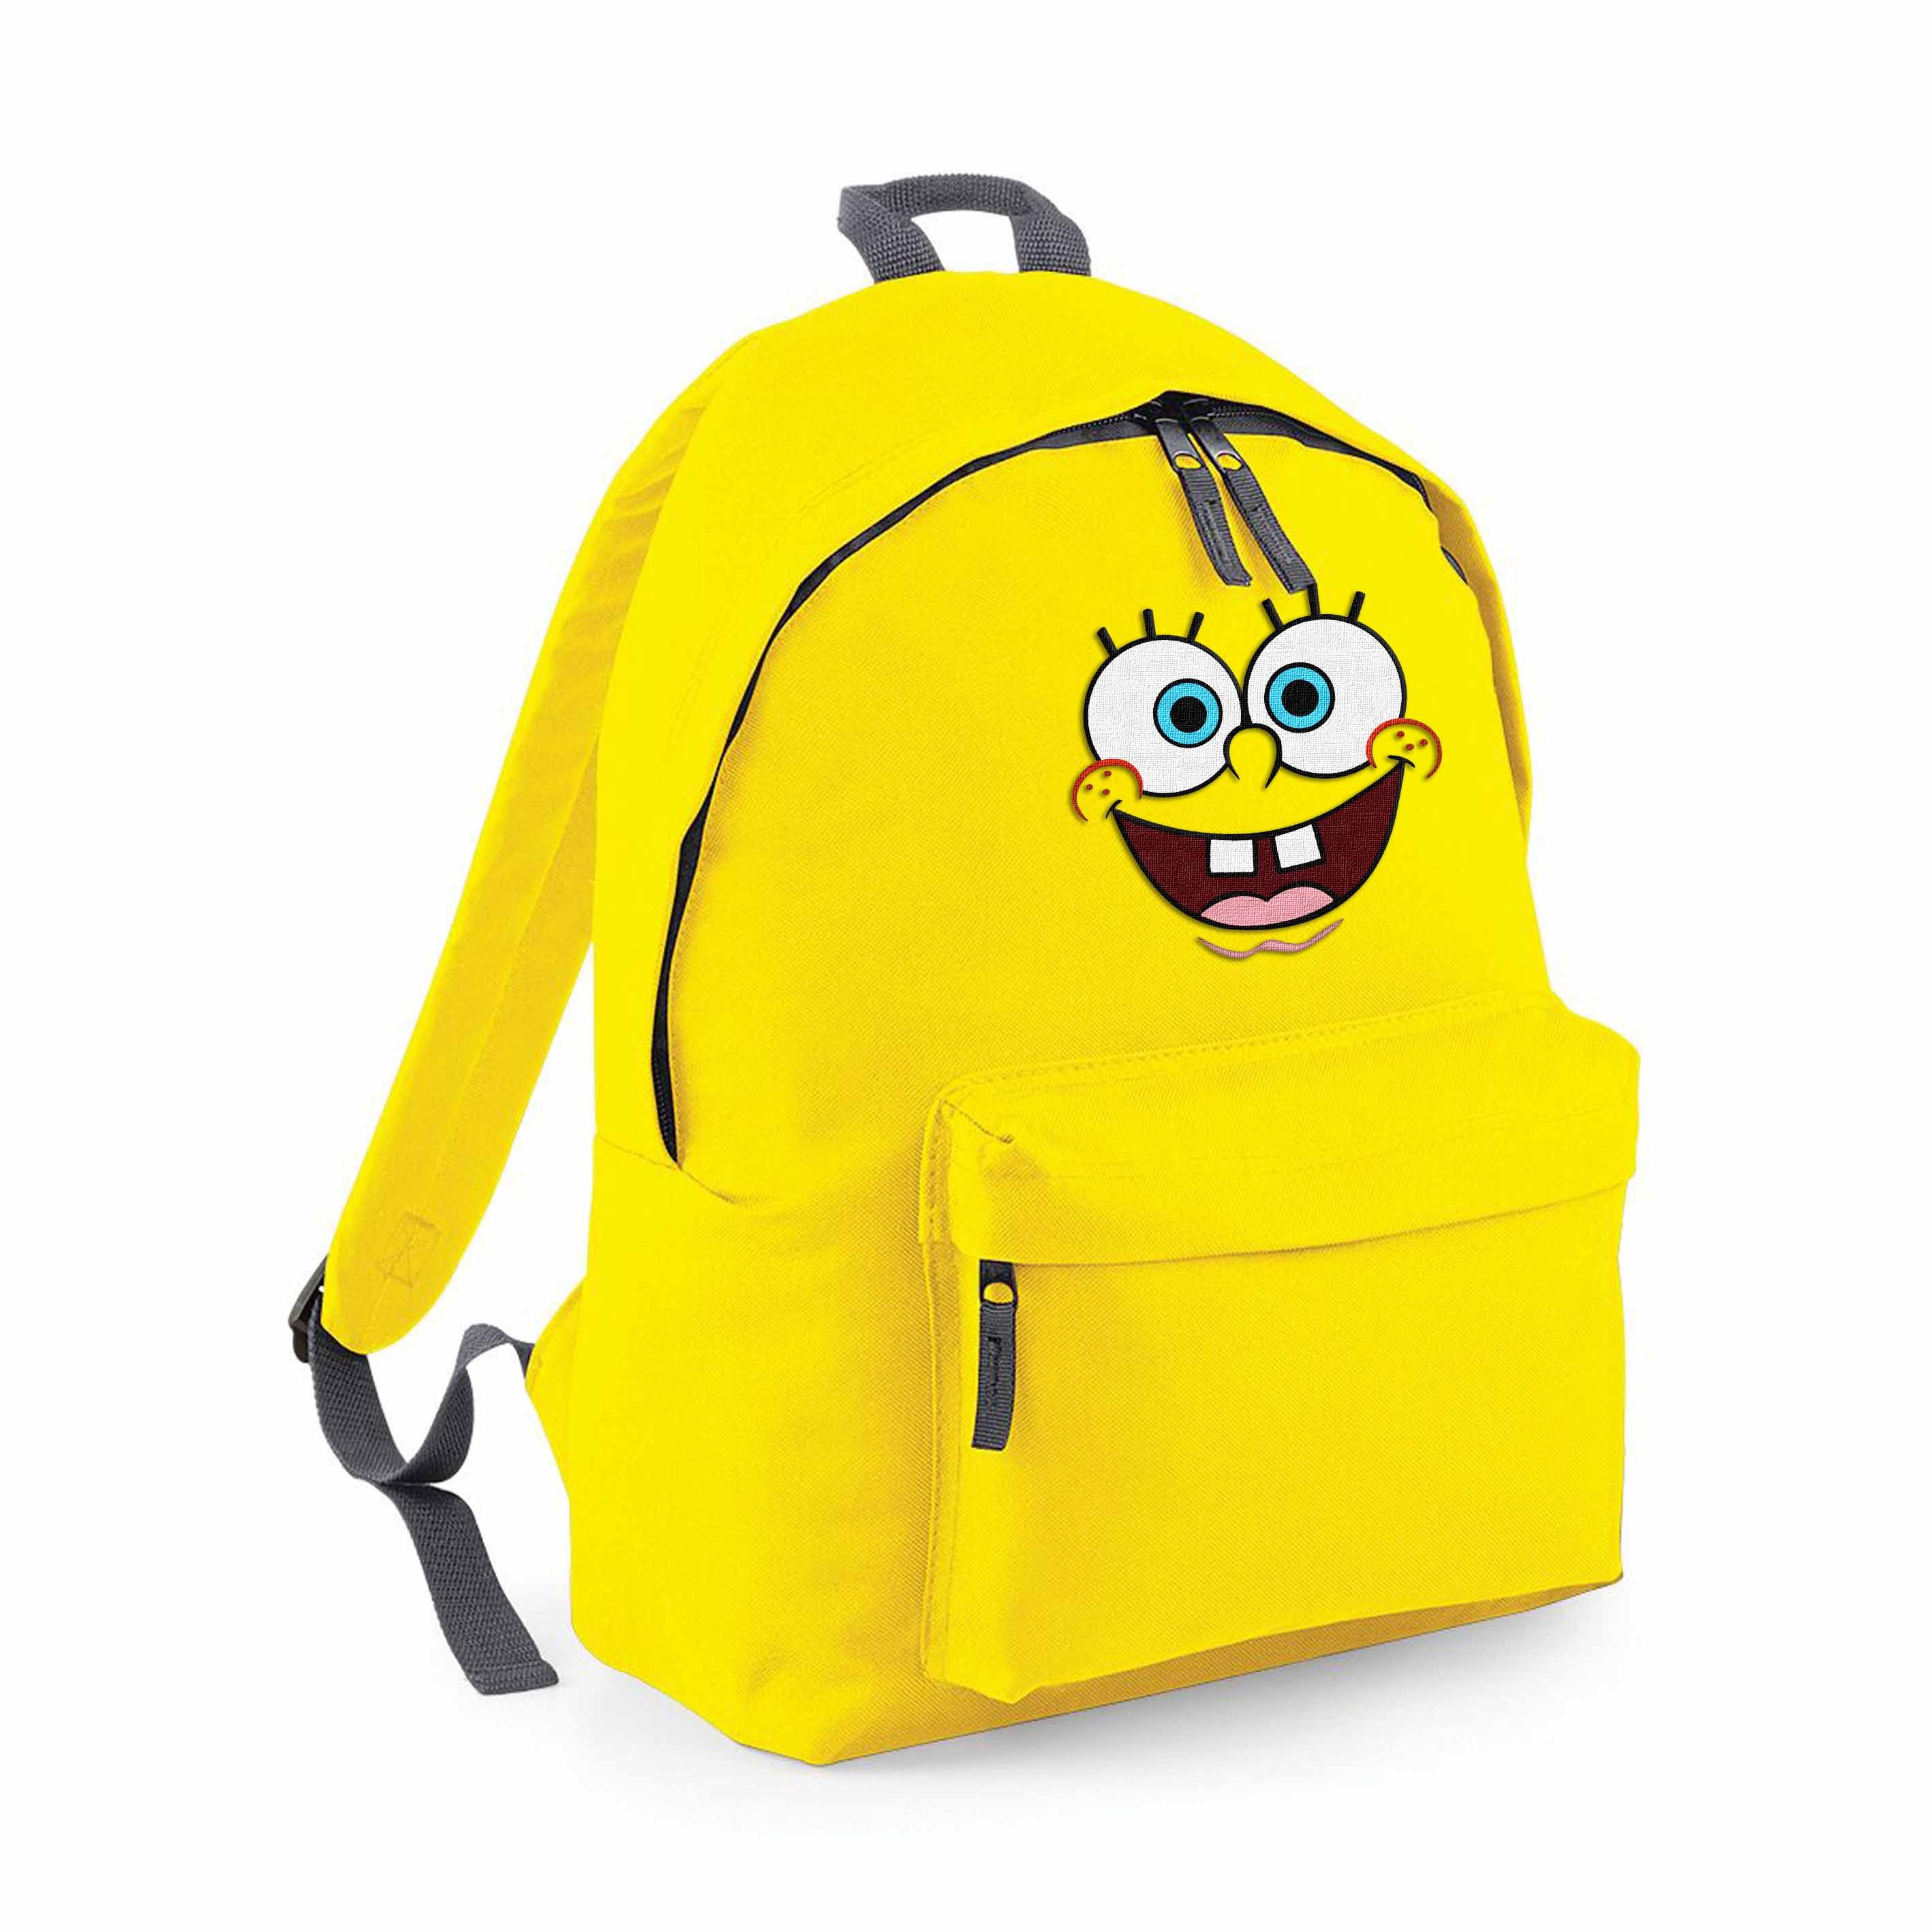 Spongebob Face Fashion Rucksack